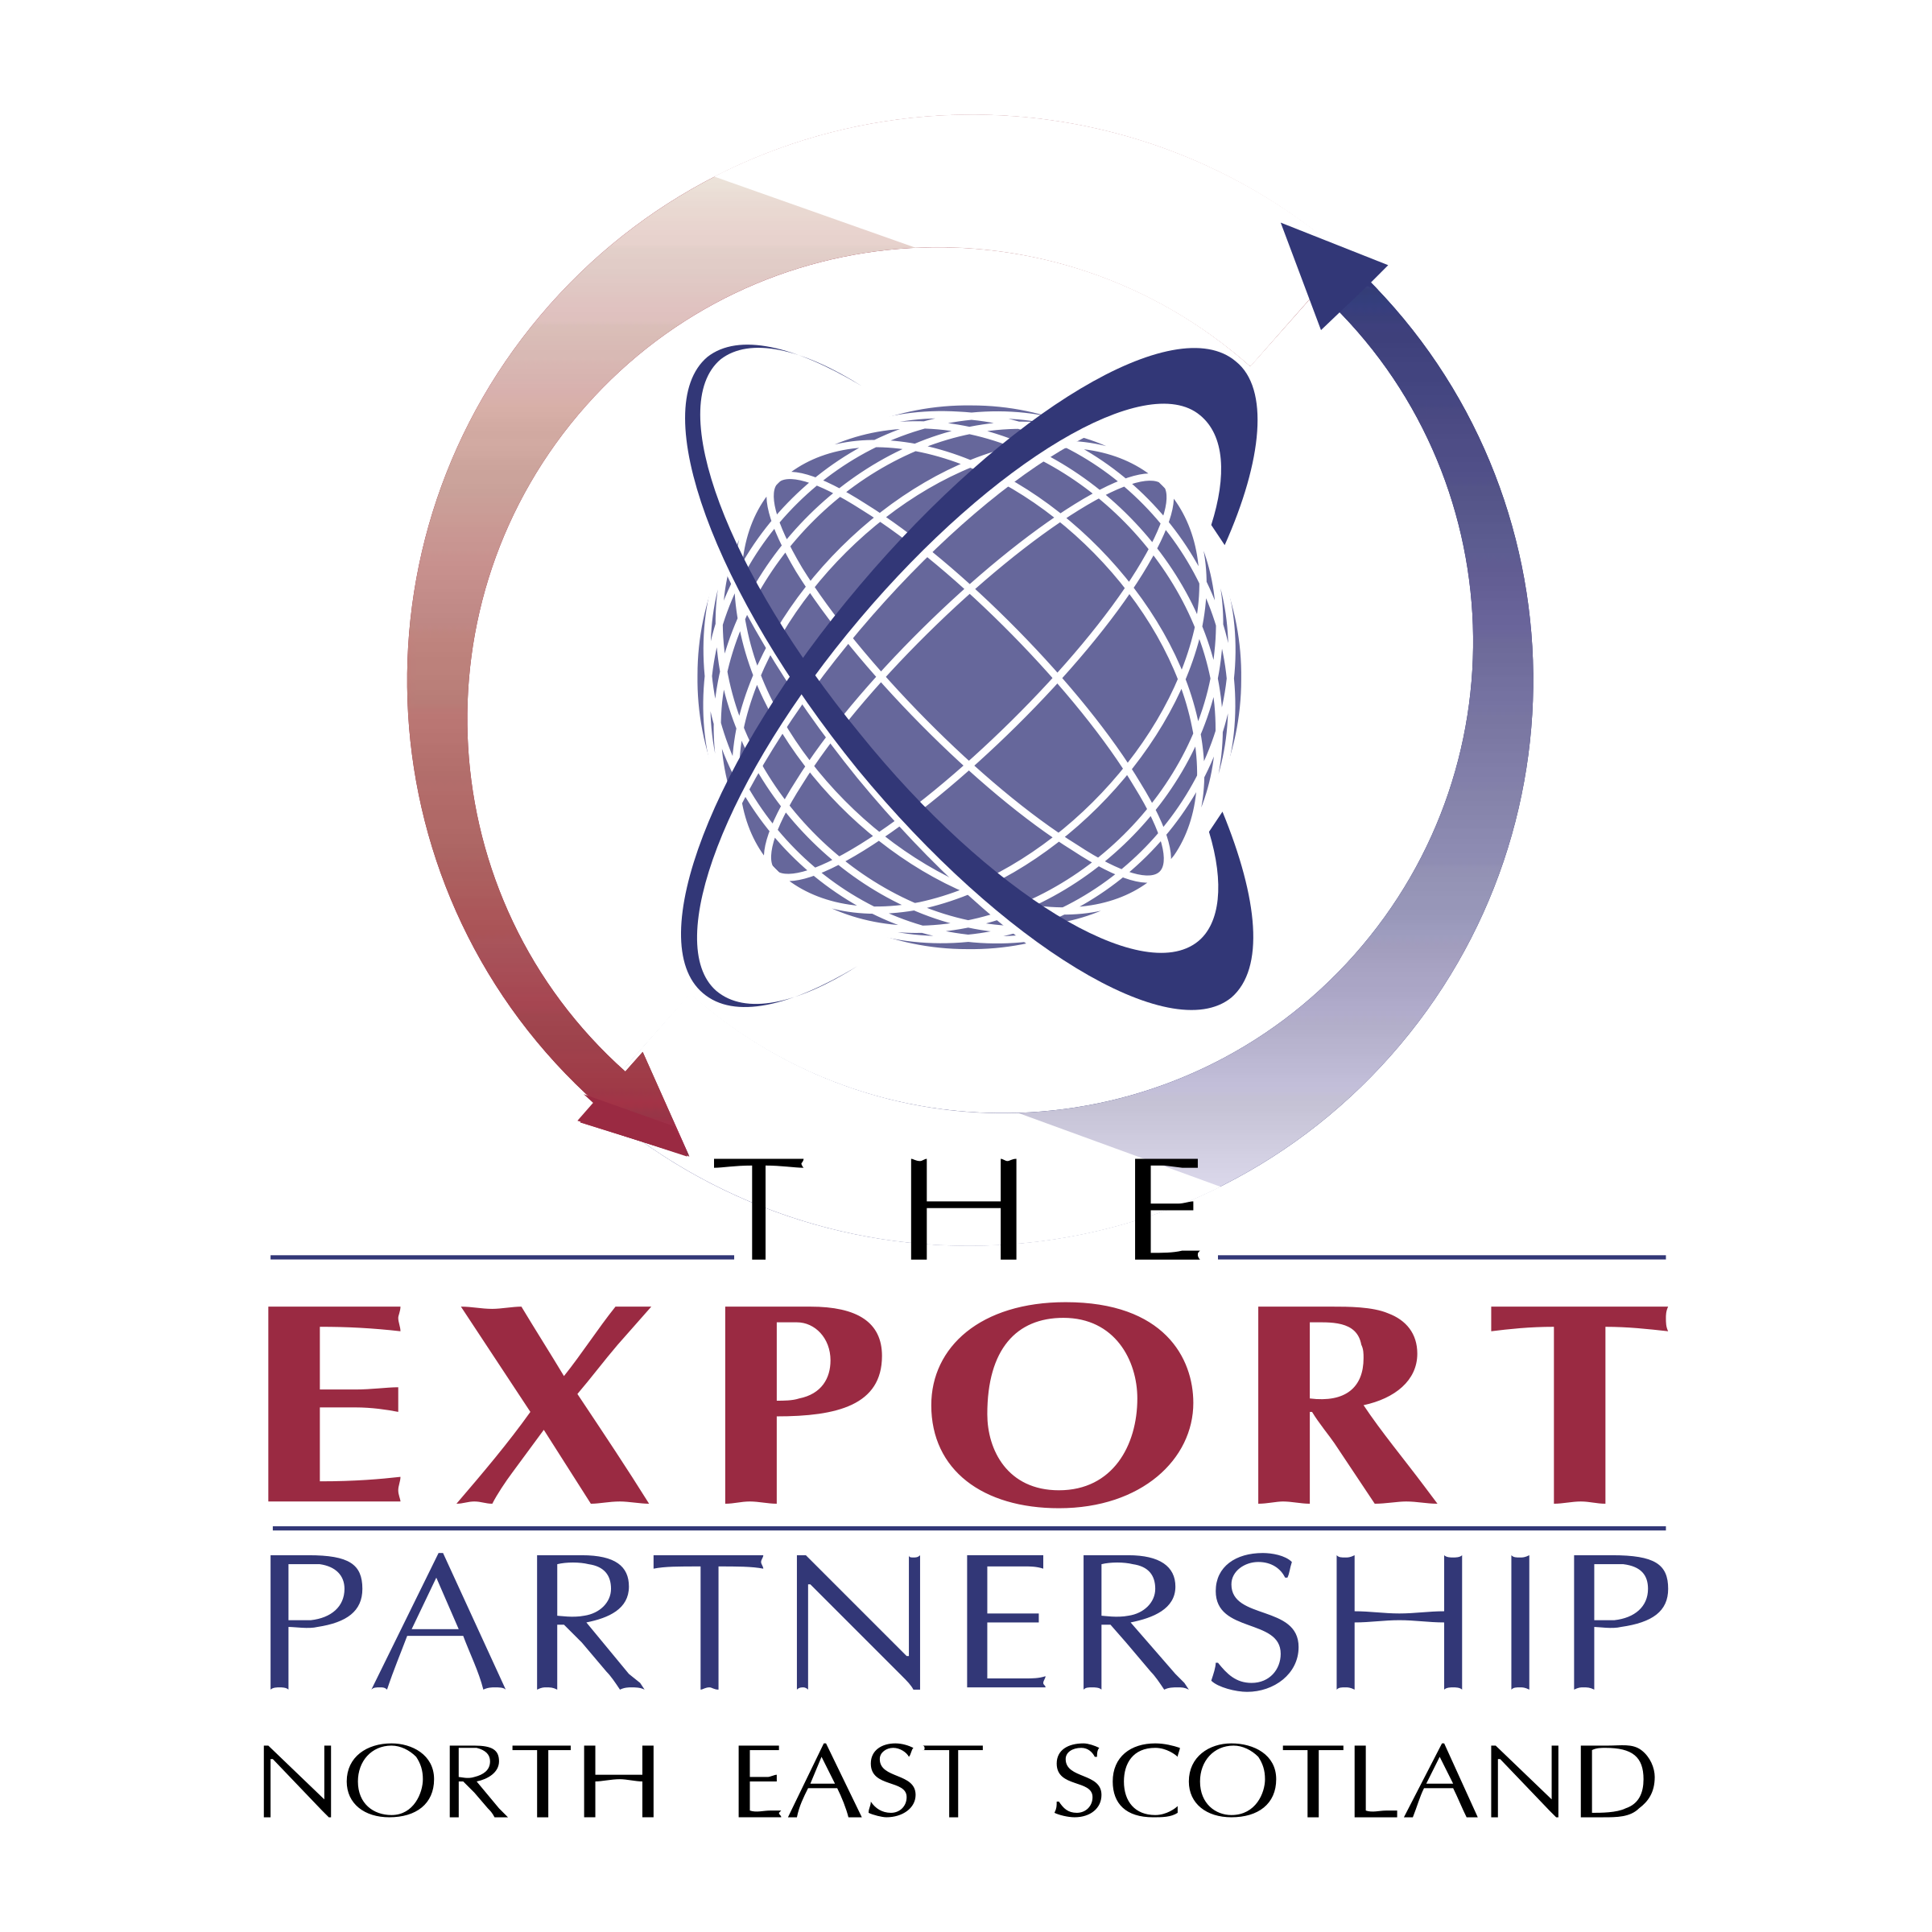 The Export Partnership Logo Black And White